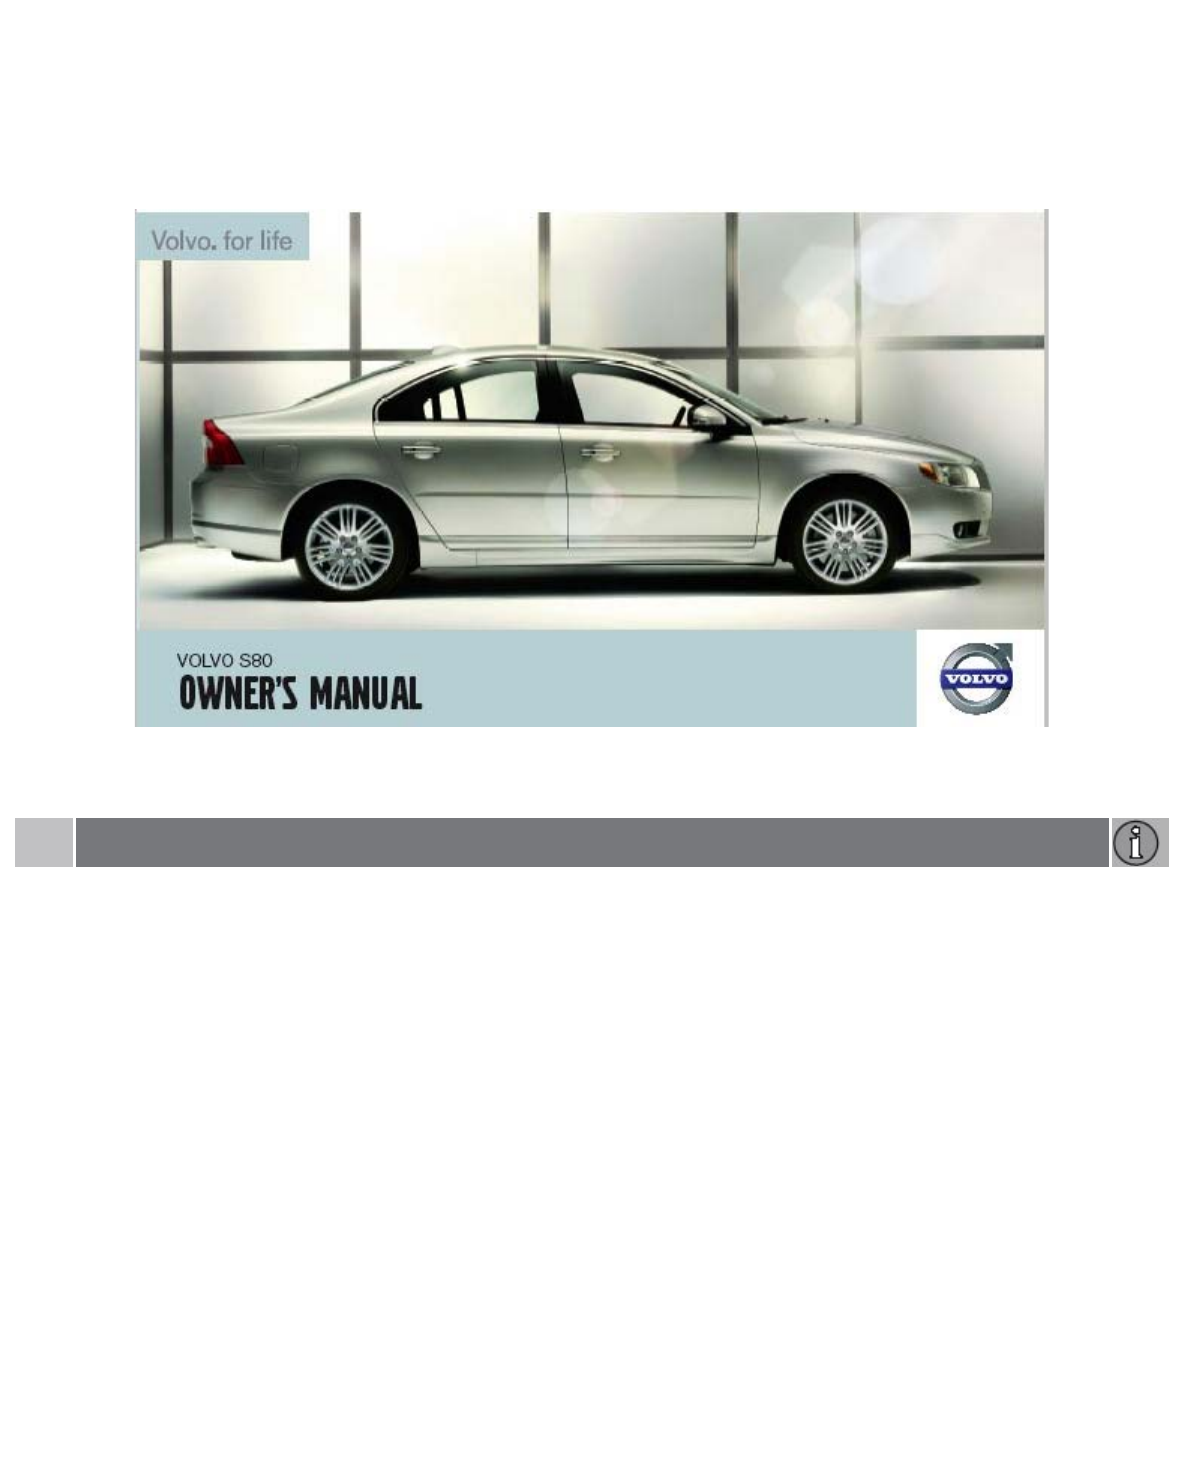 2007 volvo s80 owners manual pdf rh manuals co 2010 volvo s80 owners manual 2008 Volvo S80